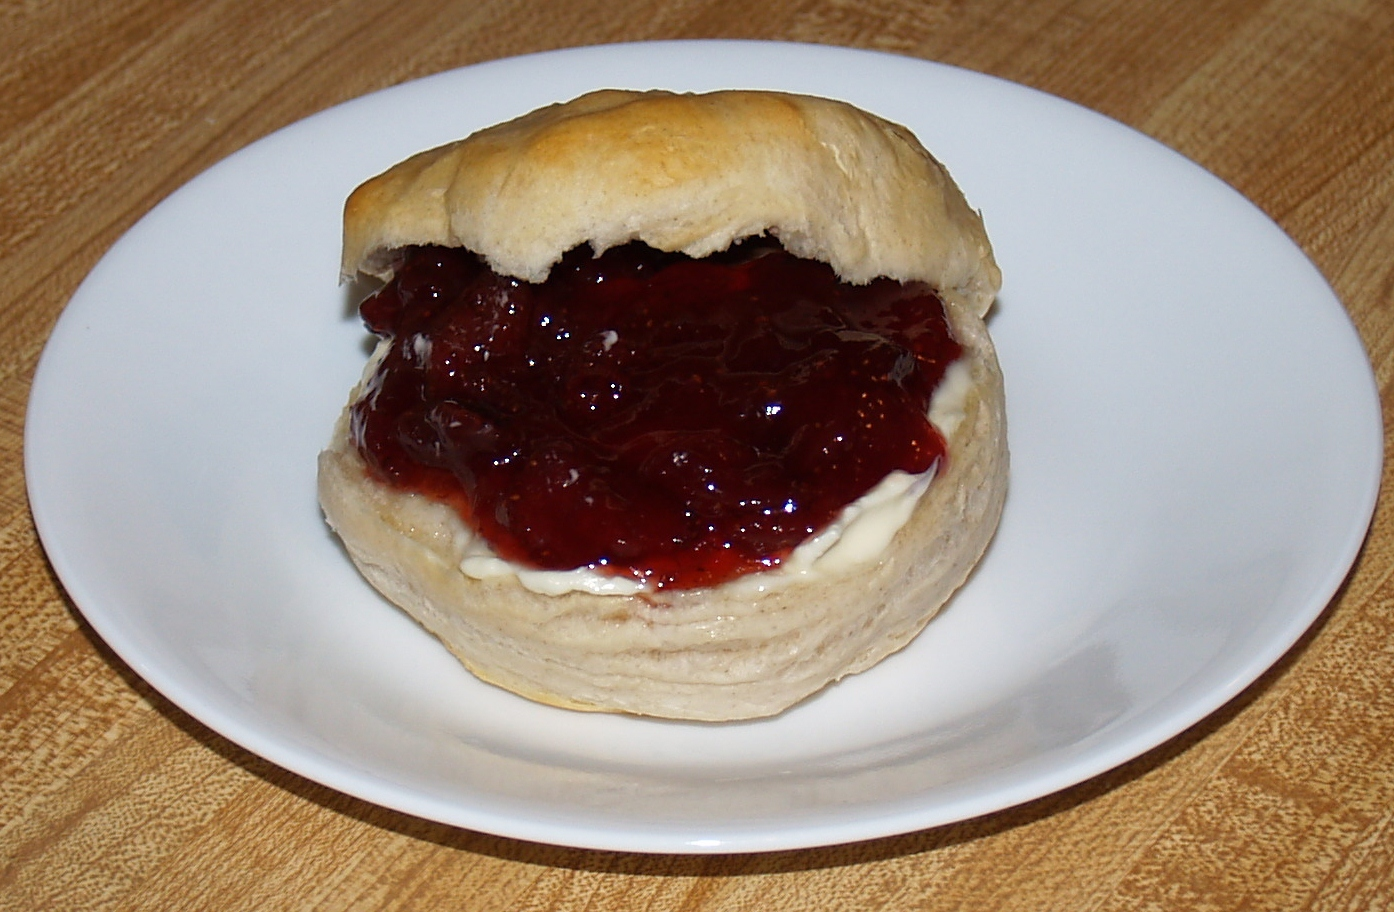 Strawberry Jam...It's What's for Breakfast!